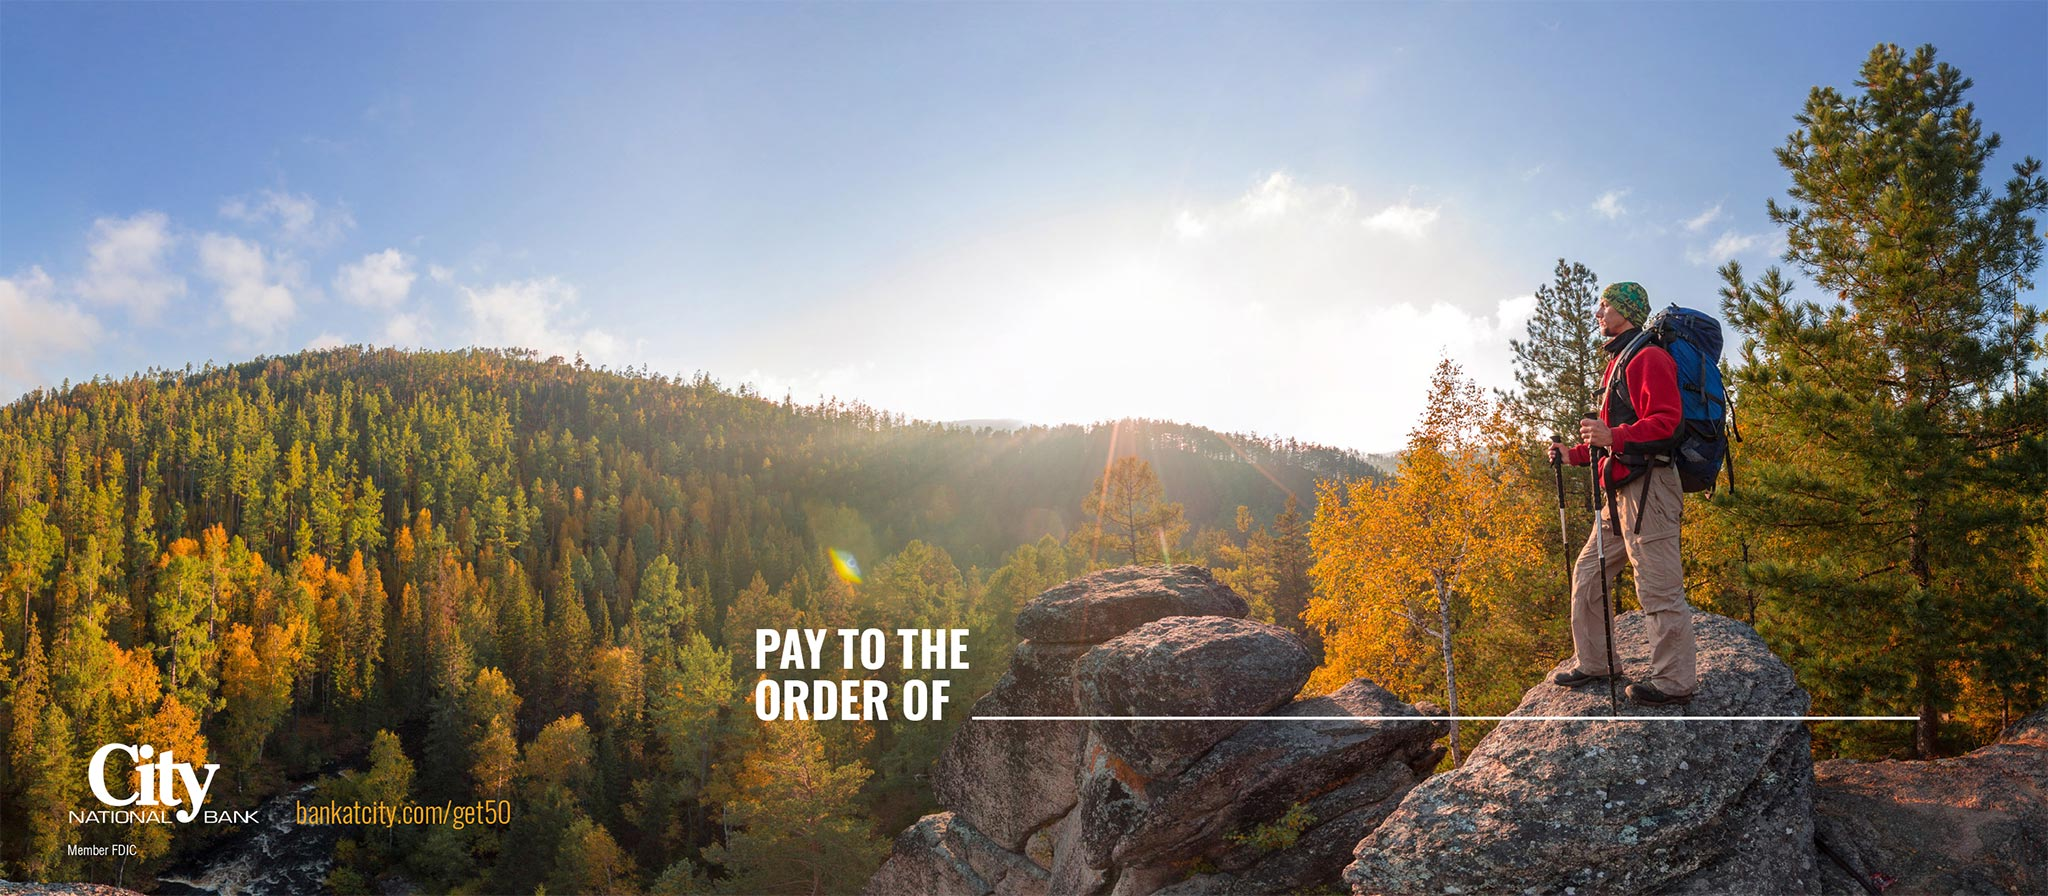 City National Bank, Pay to the Order Of Direct Mail